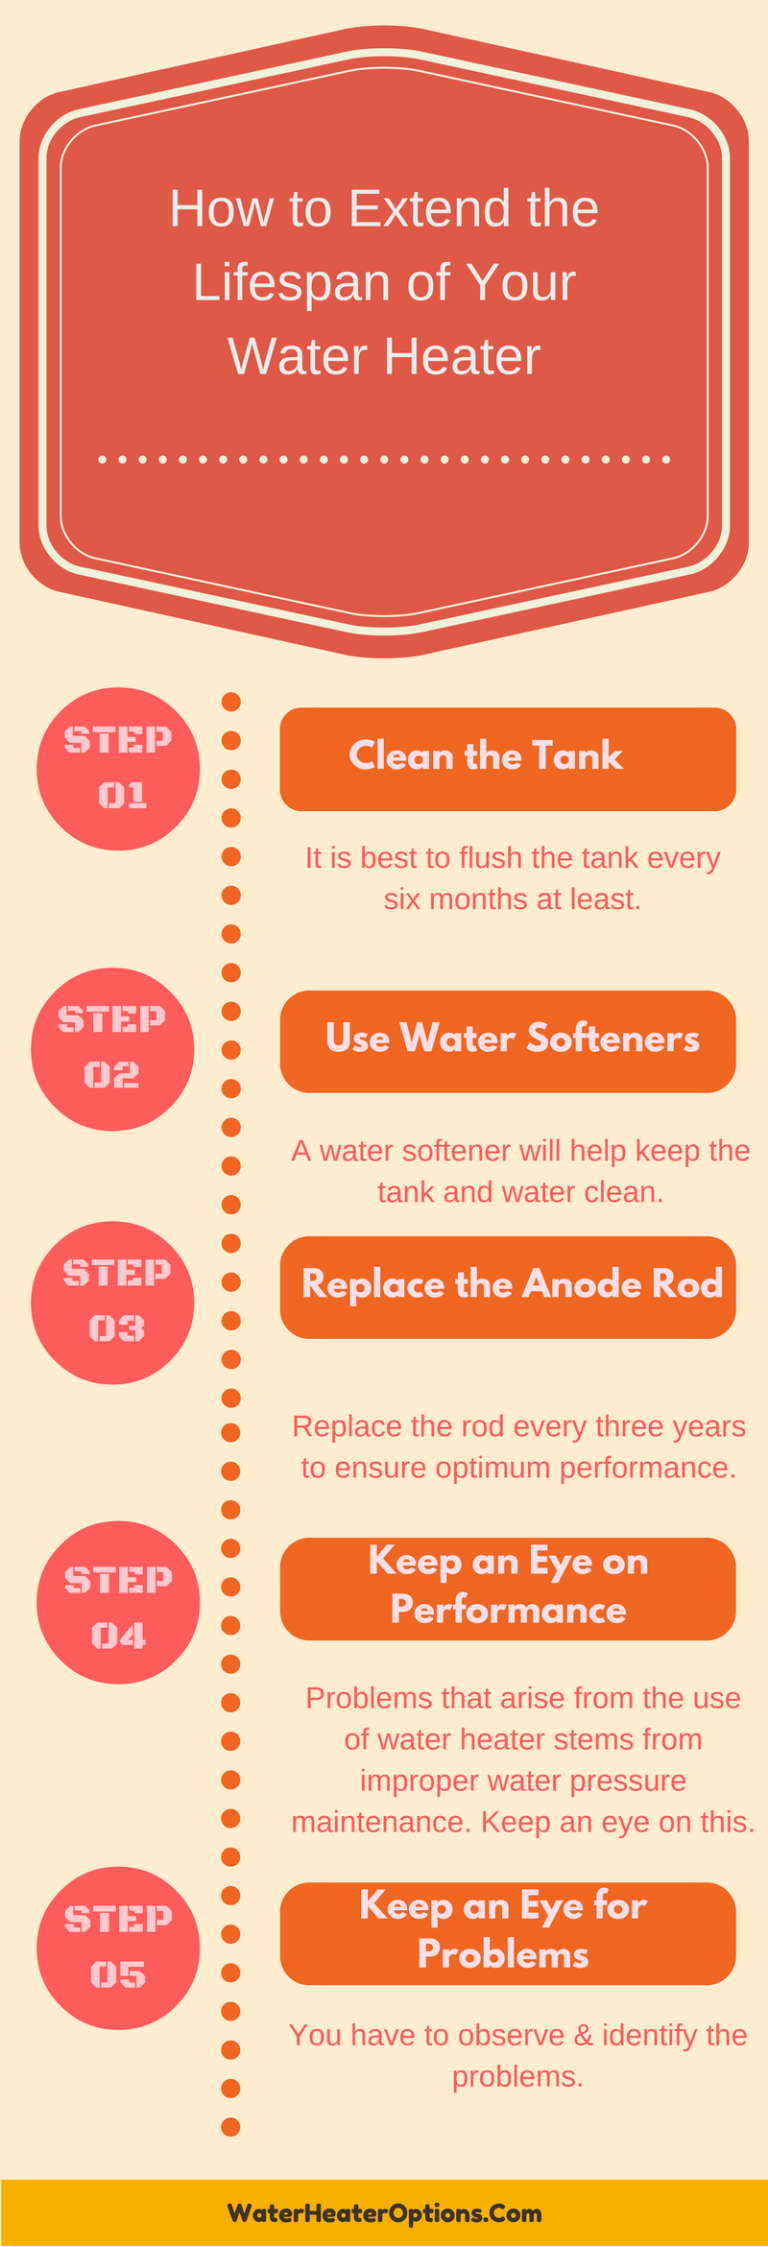 How to Extend the Lifespan of Your Water Heater